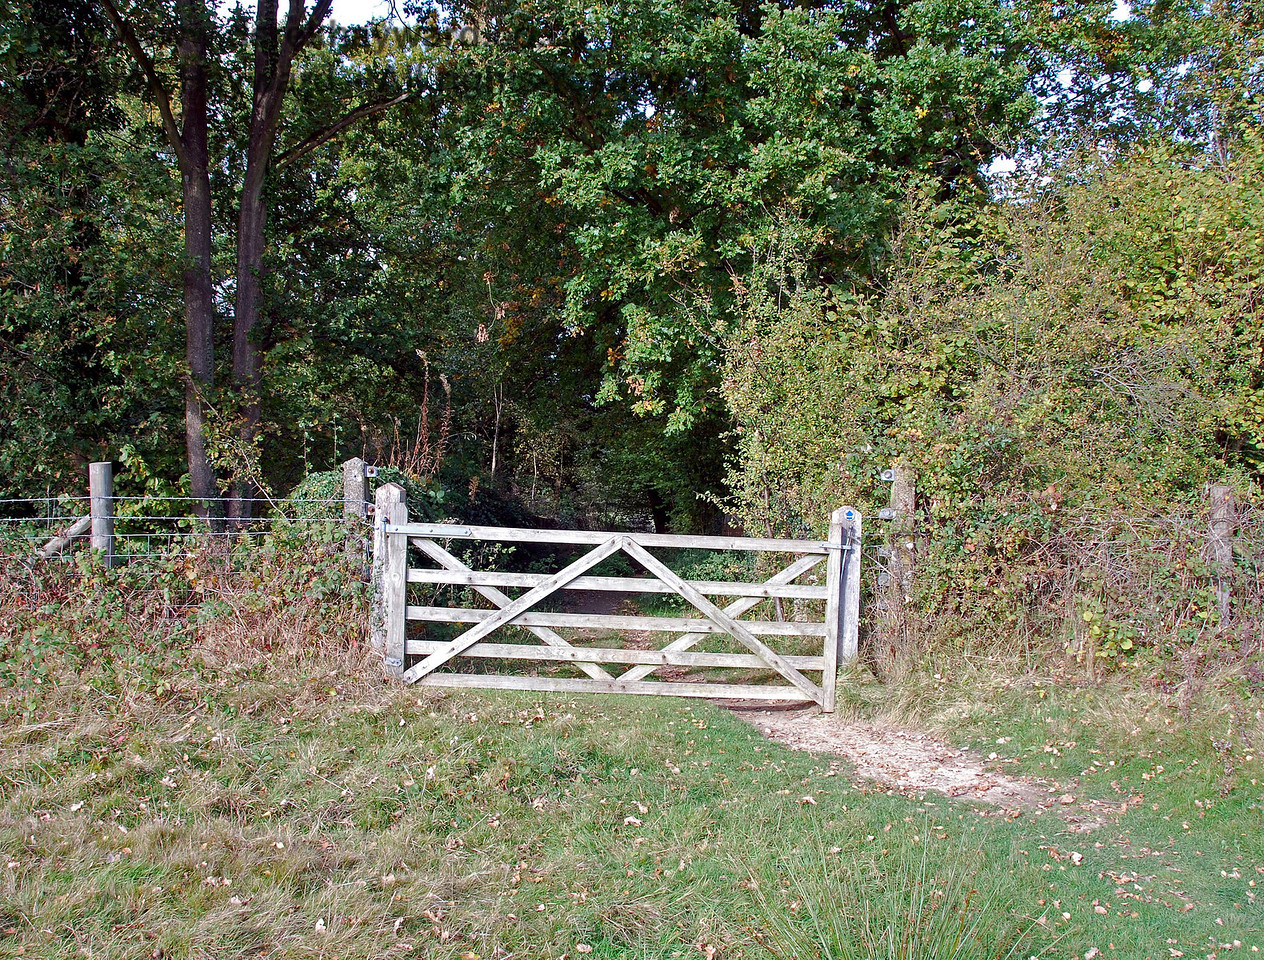 Still up on the land adjacent to the bridge, this shot looks north. The entrance to the bridge is gated to control livestock, and the bridleway leads away towards Chartners Farm. 18.10.2009